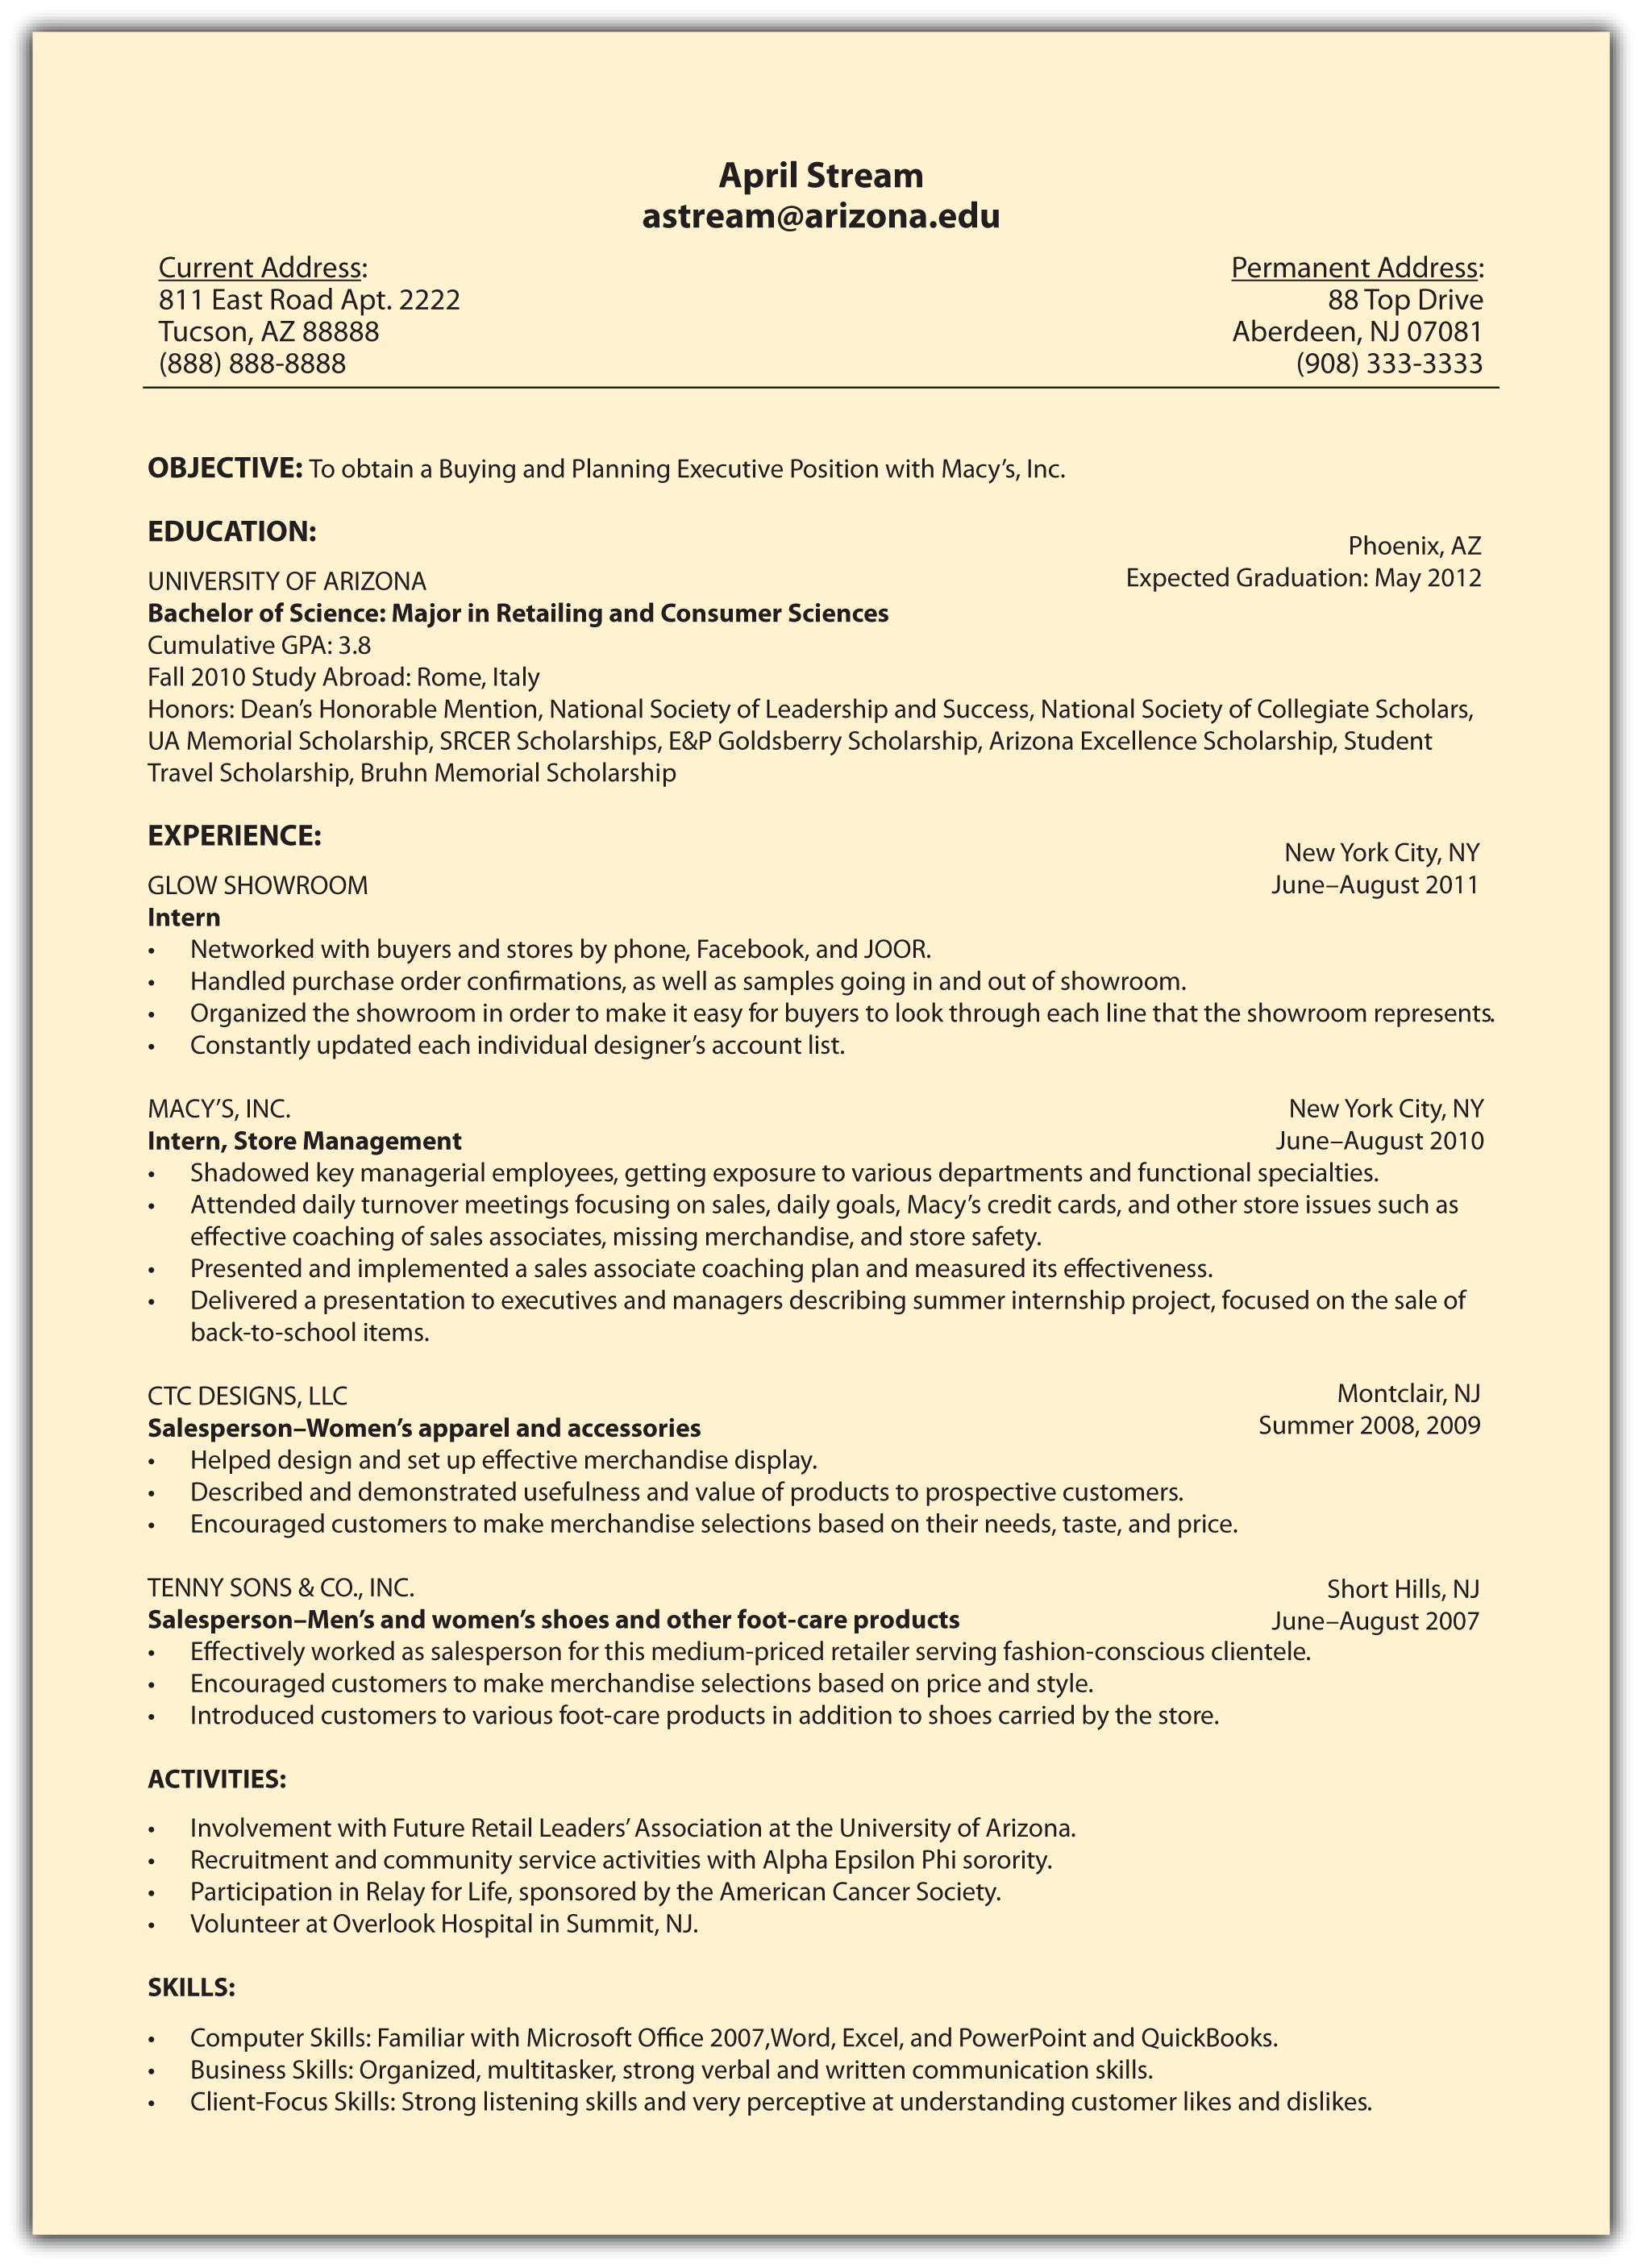 4.9 Sample Résumés  How To Make The Perfect Resume